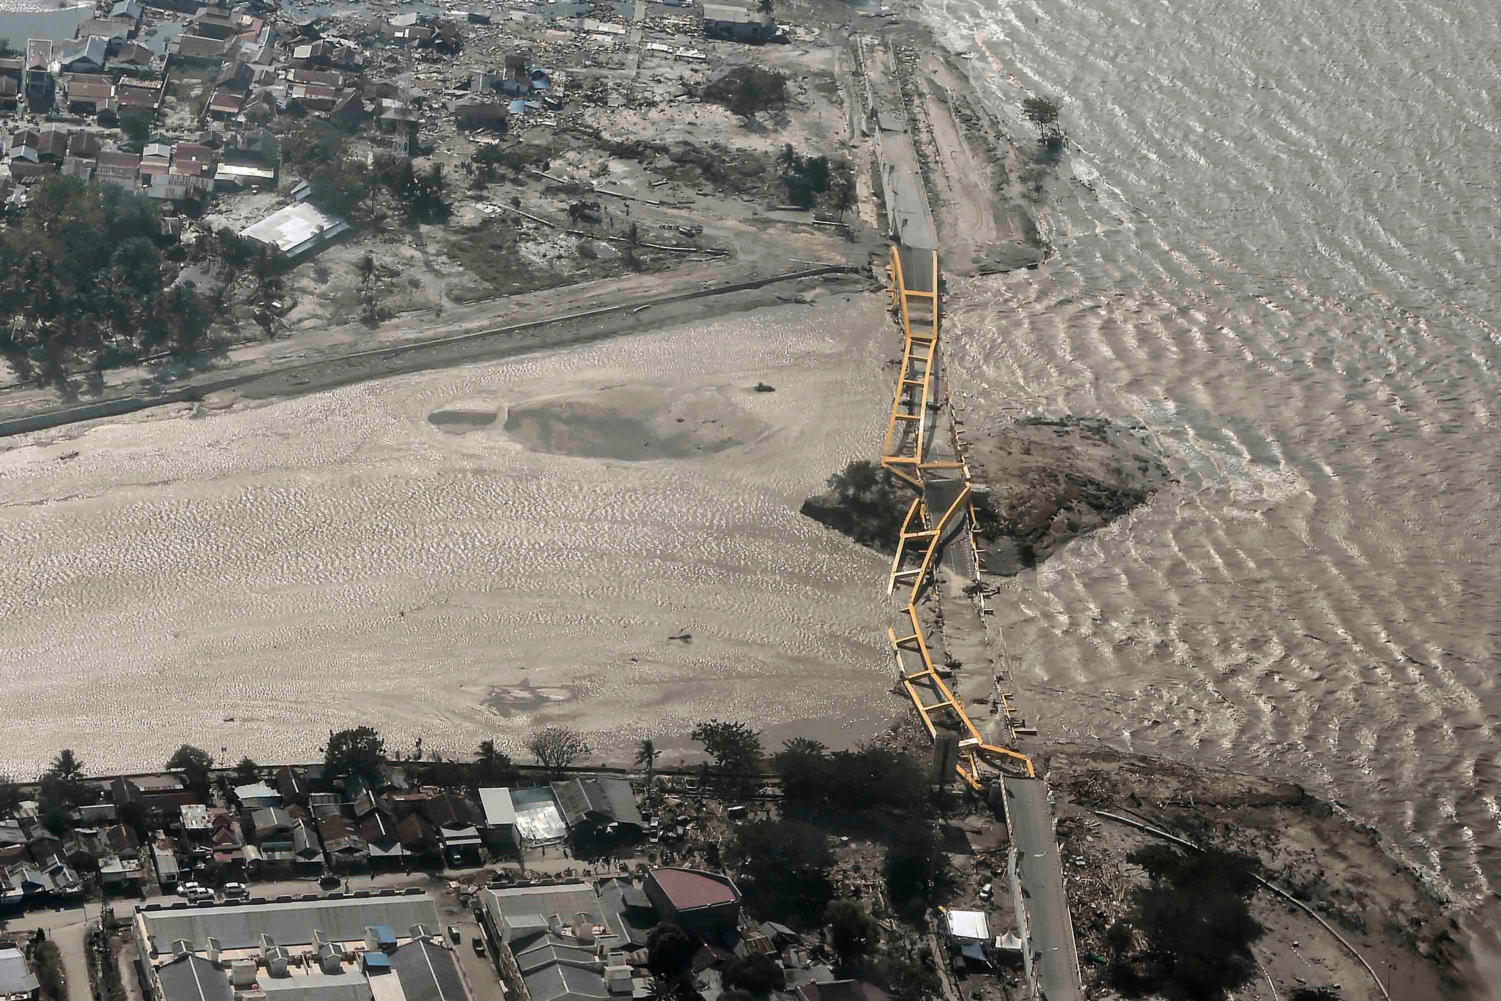 An aerial view shows bridge damaged by an earthquake and tsunami in Palu, Central Sulawesi, Indonesia September 29, 2018. Antara Foto/Muhammad Adimaja via REUTERS